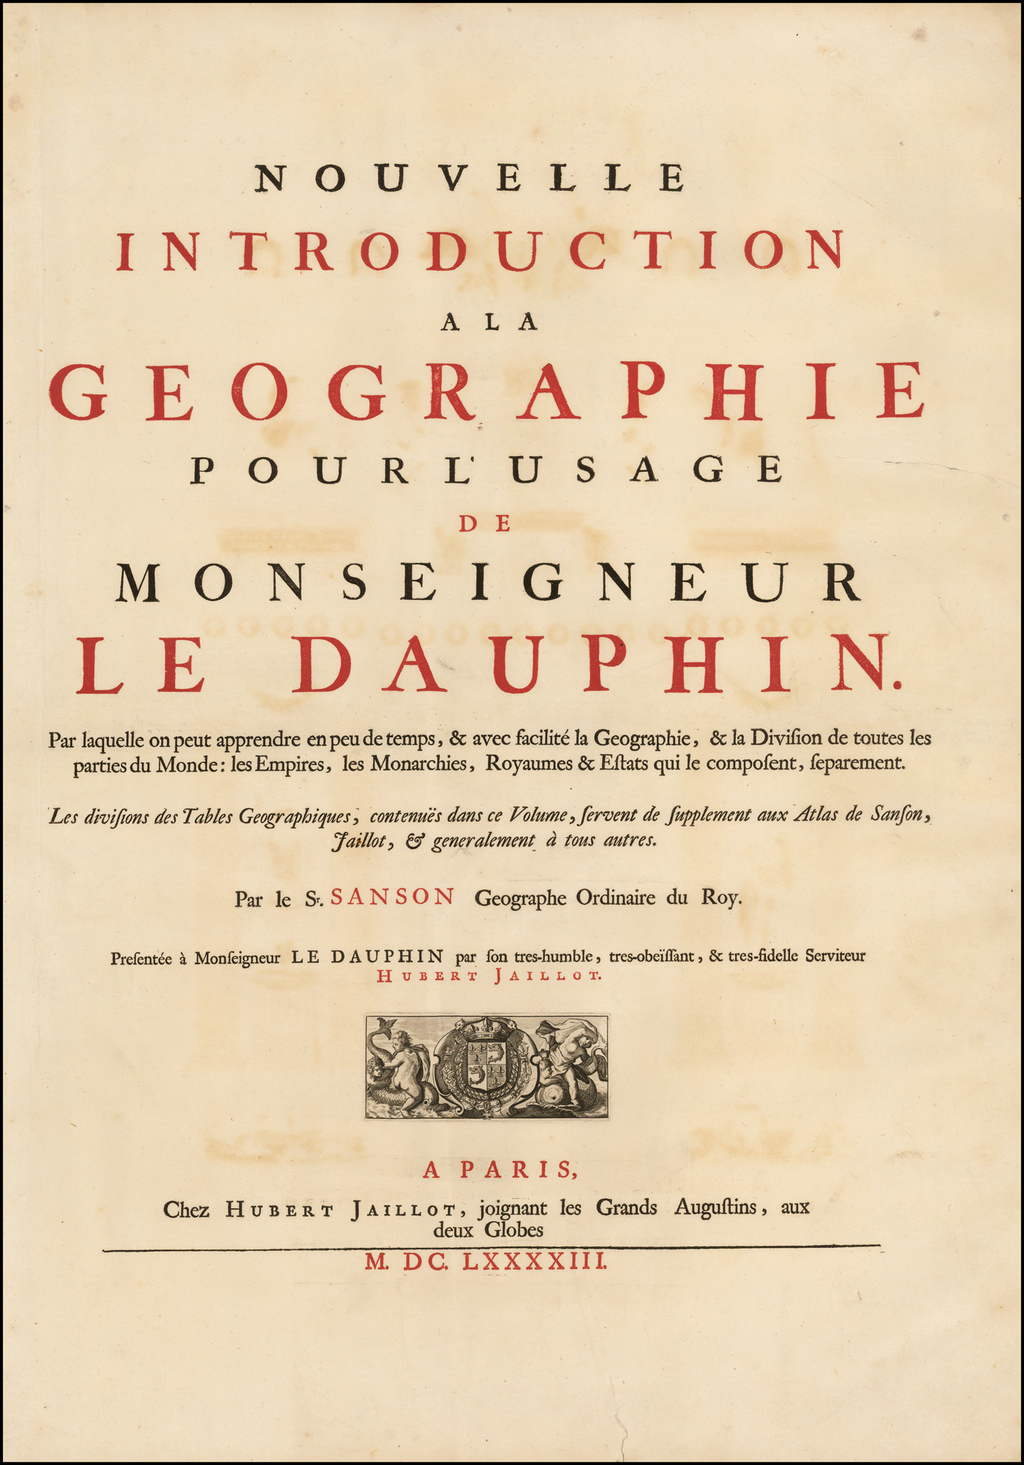 [Title Page] Nouvelle Introduction a la Geographie pour l'usage de Monseigneur Le Dauphin. . . .M. DC. LXXXXIII. By Alexis-Hubert Jaillot